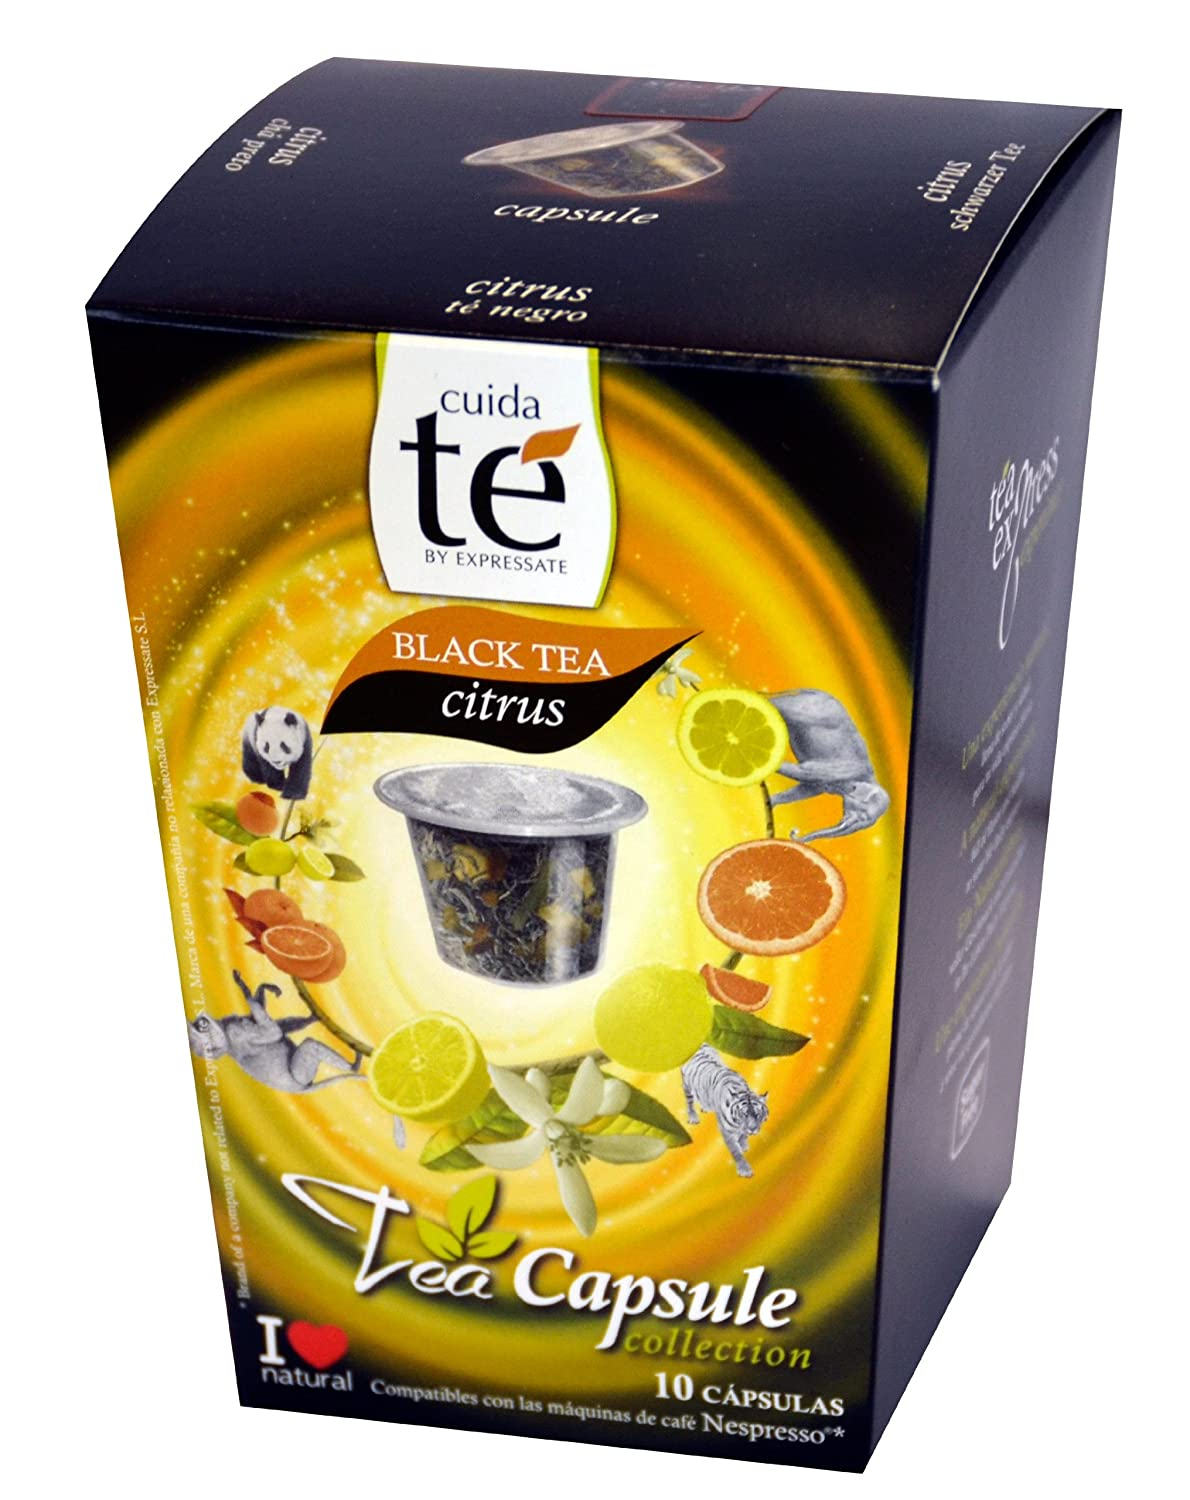 Amazon.com : 30 Nespresso Compatible Pods - Origen Tea, Black Citrus Tea, 3 Boxes - 10 Pods per box : Coffee Brewing Machine Capsules : Grocery & Gourmet ...